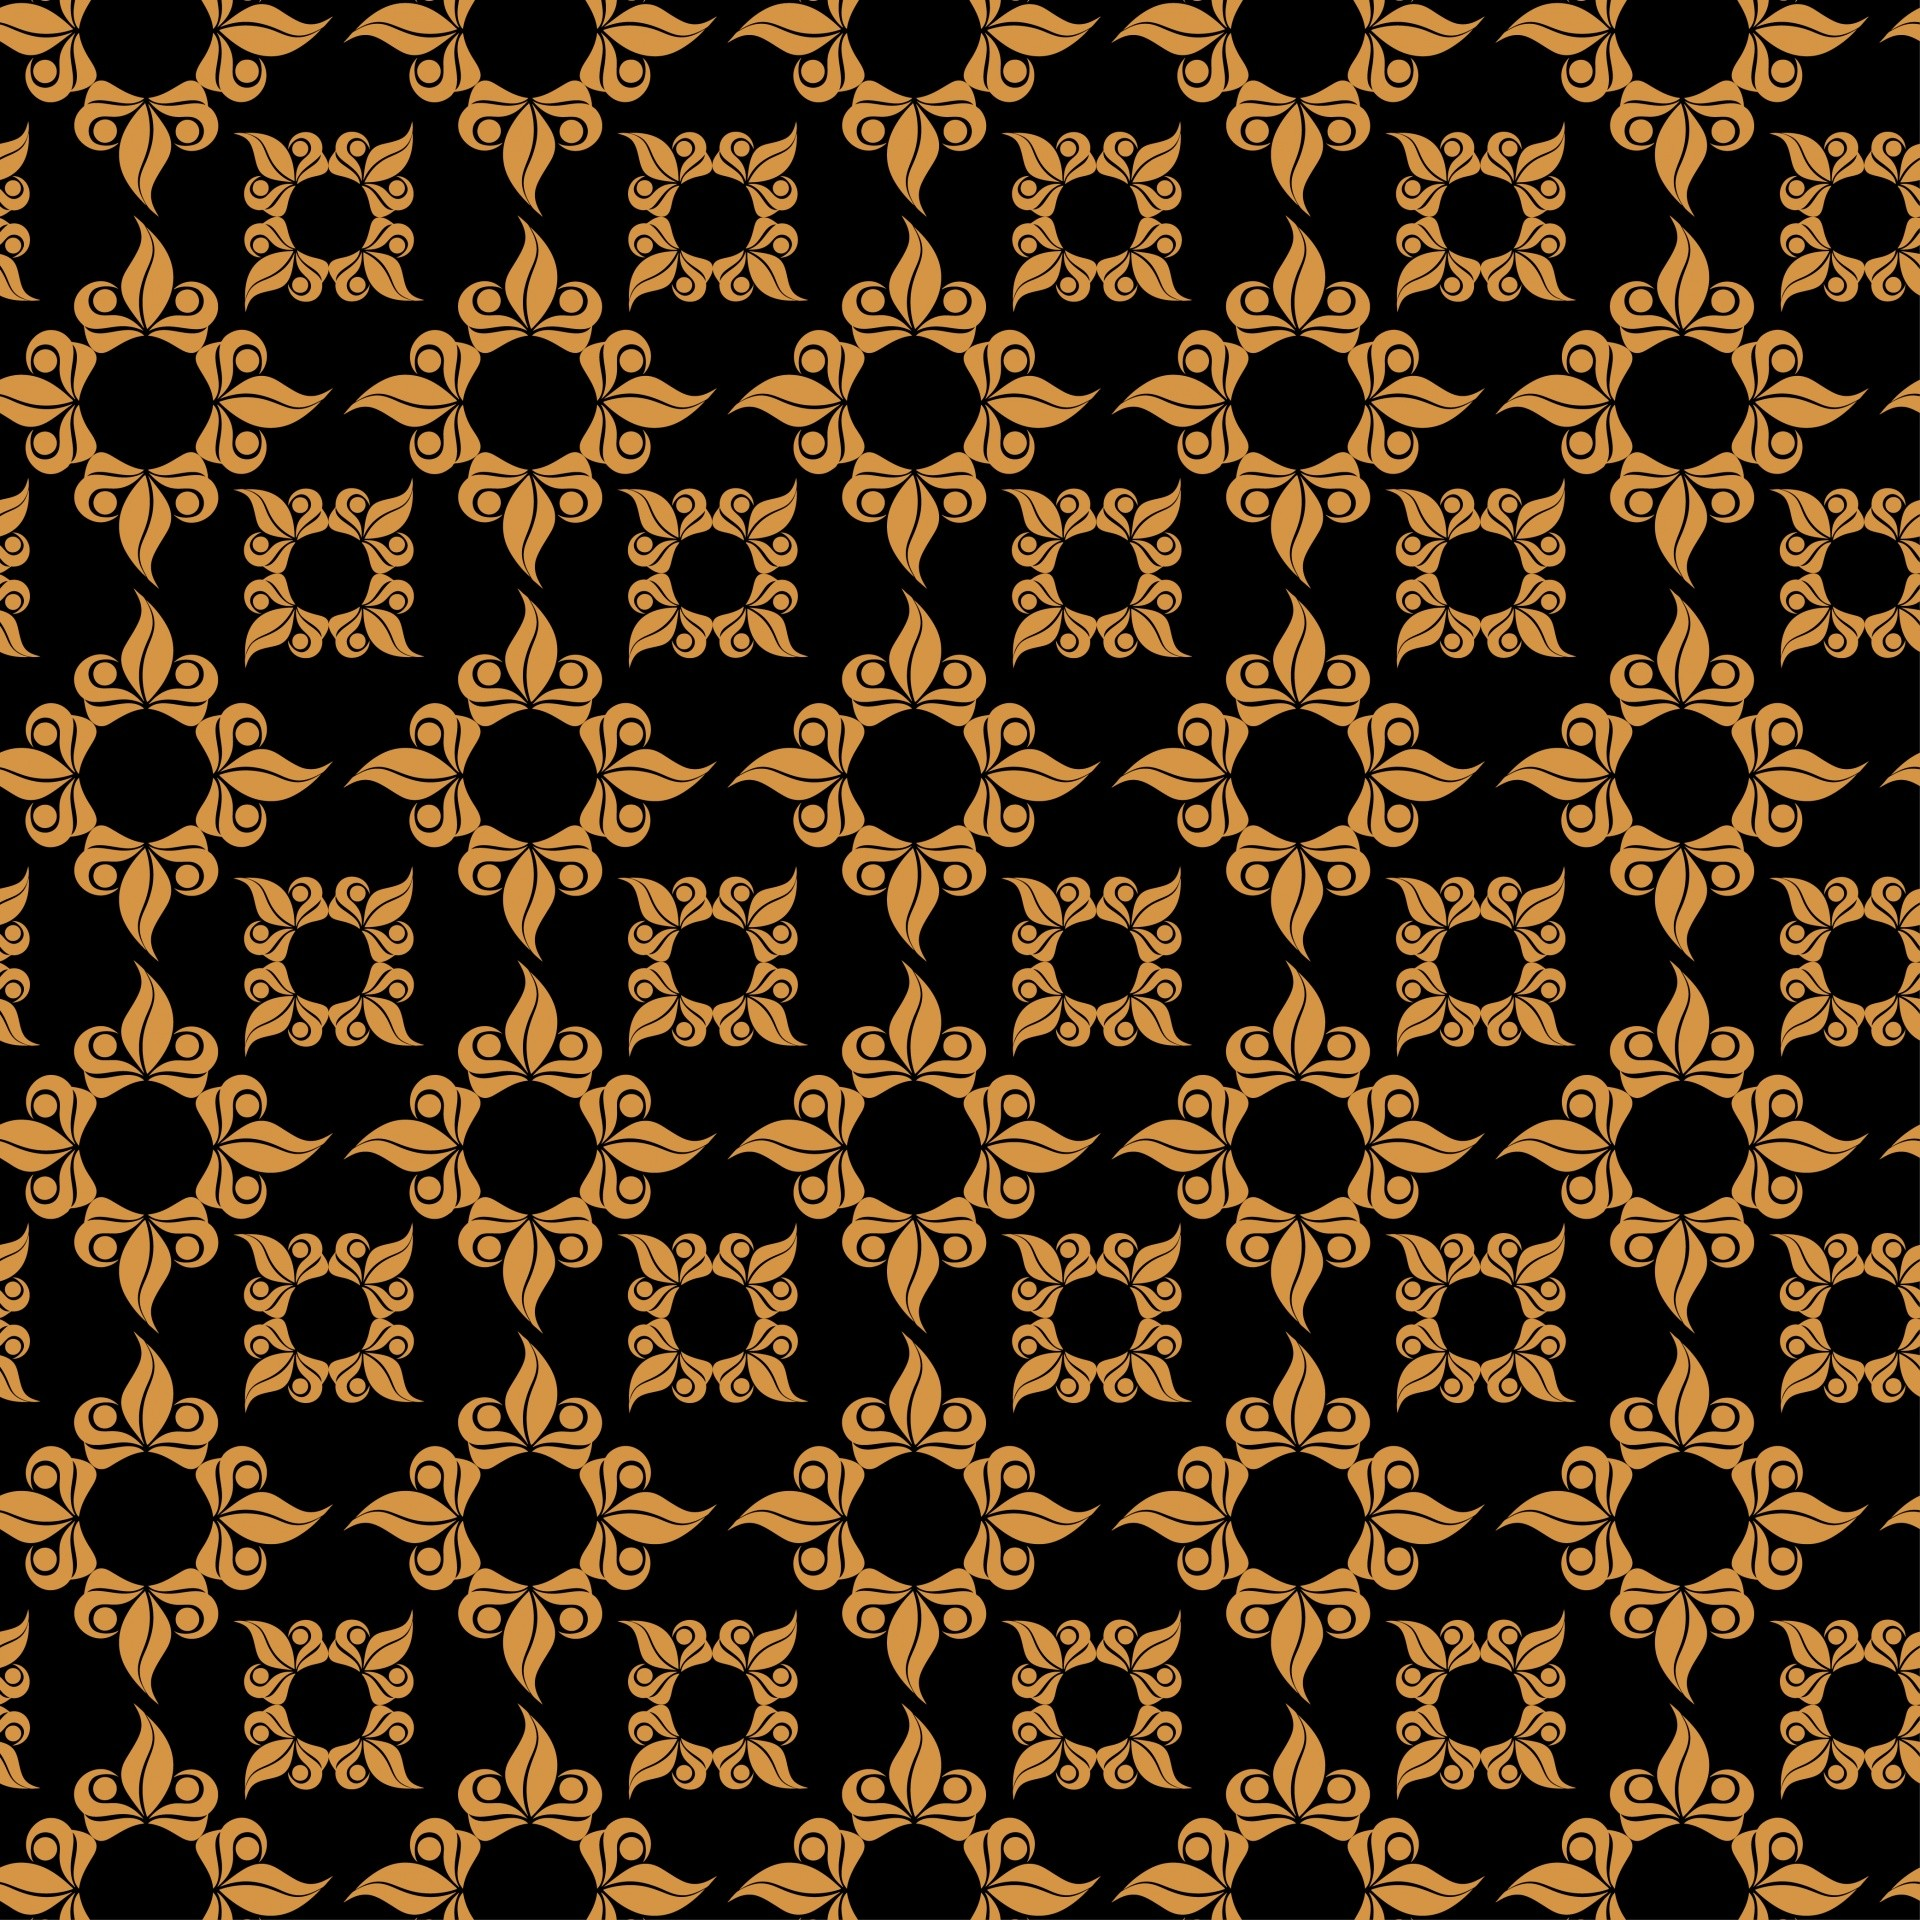 1920x1920 Ornamental Black, Gold Background